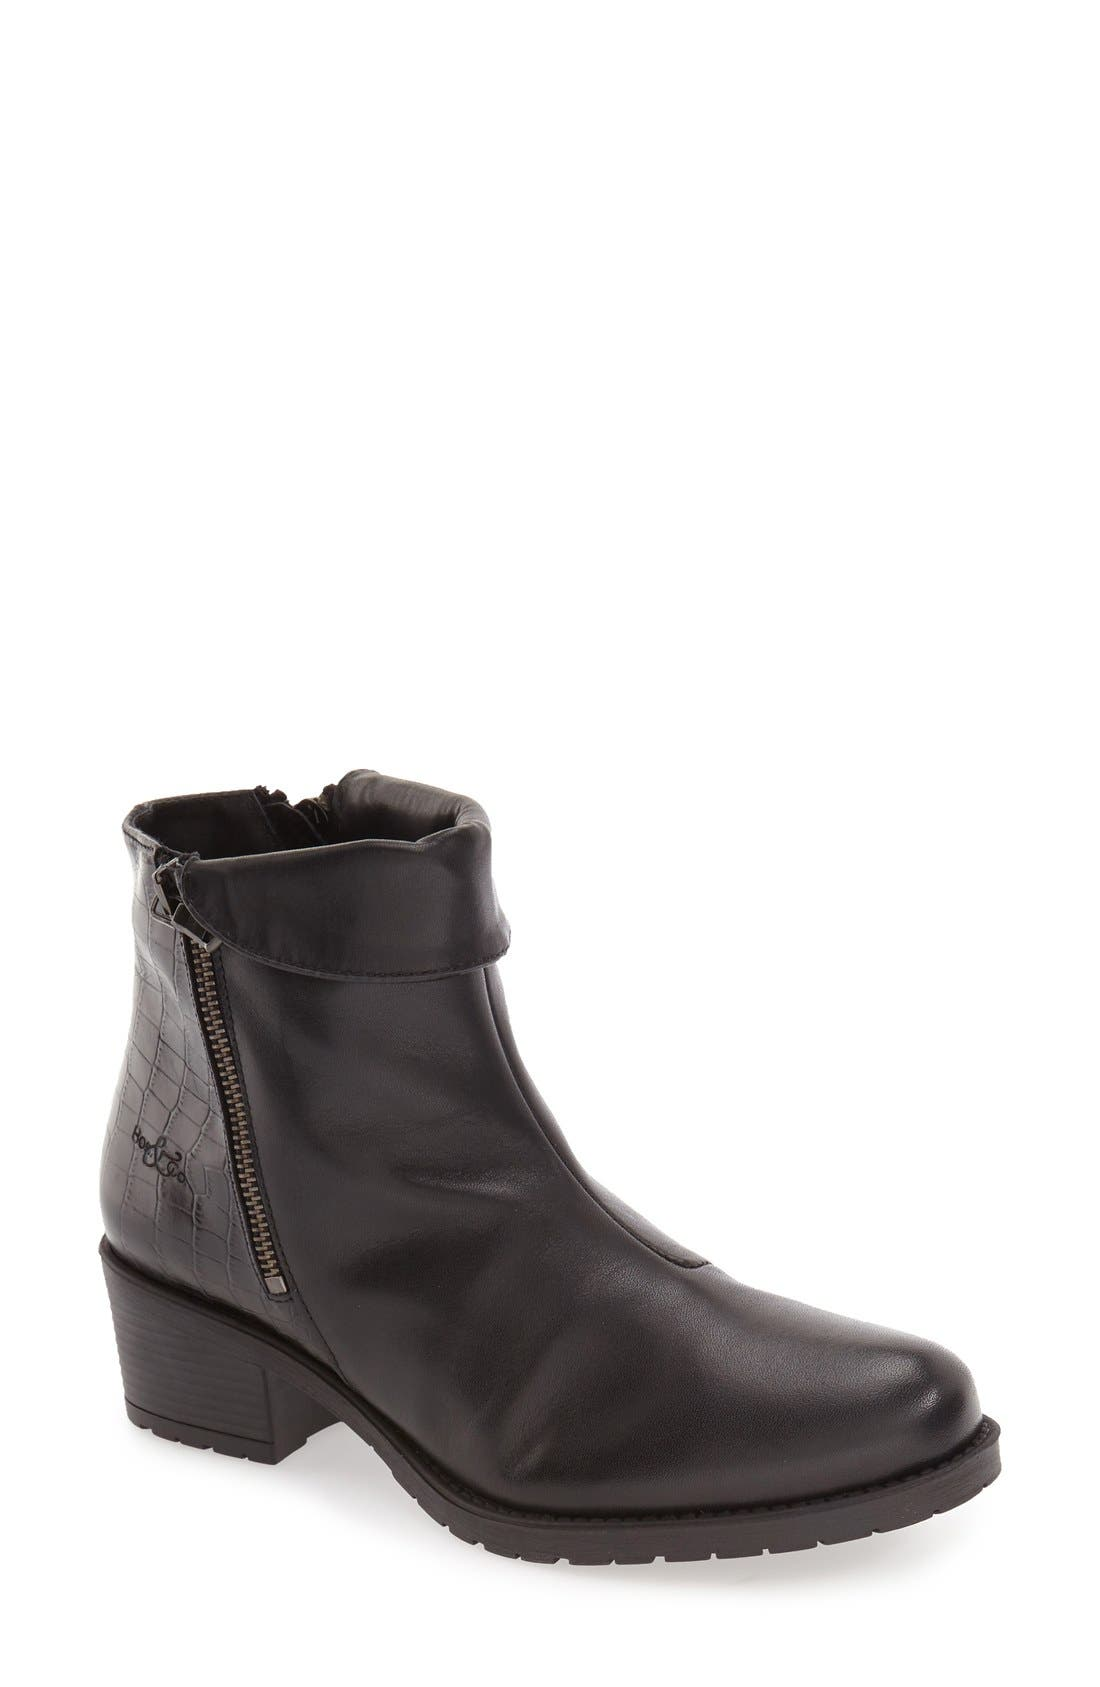 'Borano' Slouchy Waterproof Bootie,                             Main thumbnail 1, color,                             Black Crinkle Patent Leather